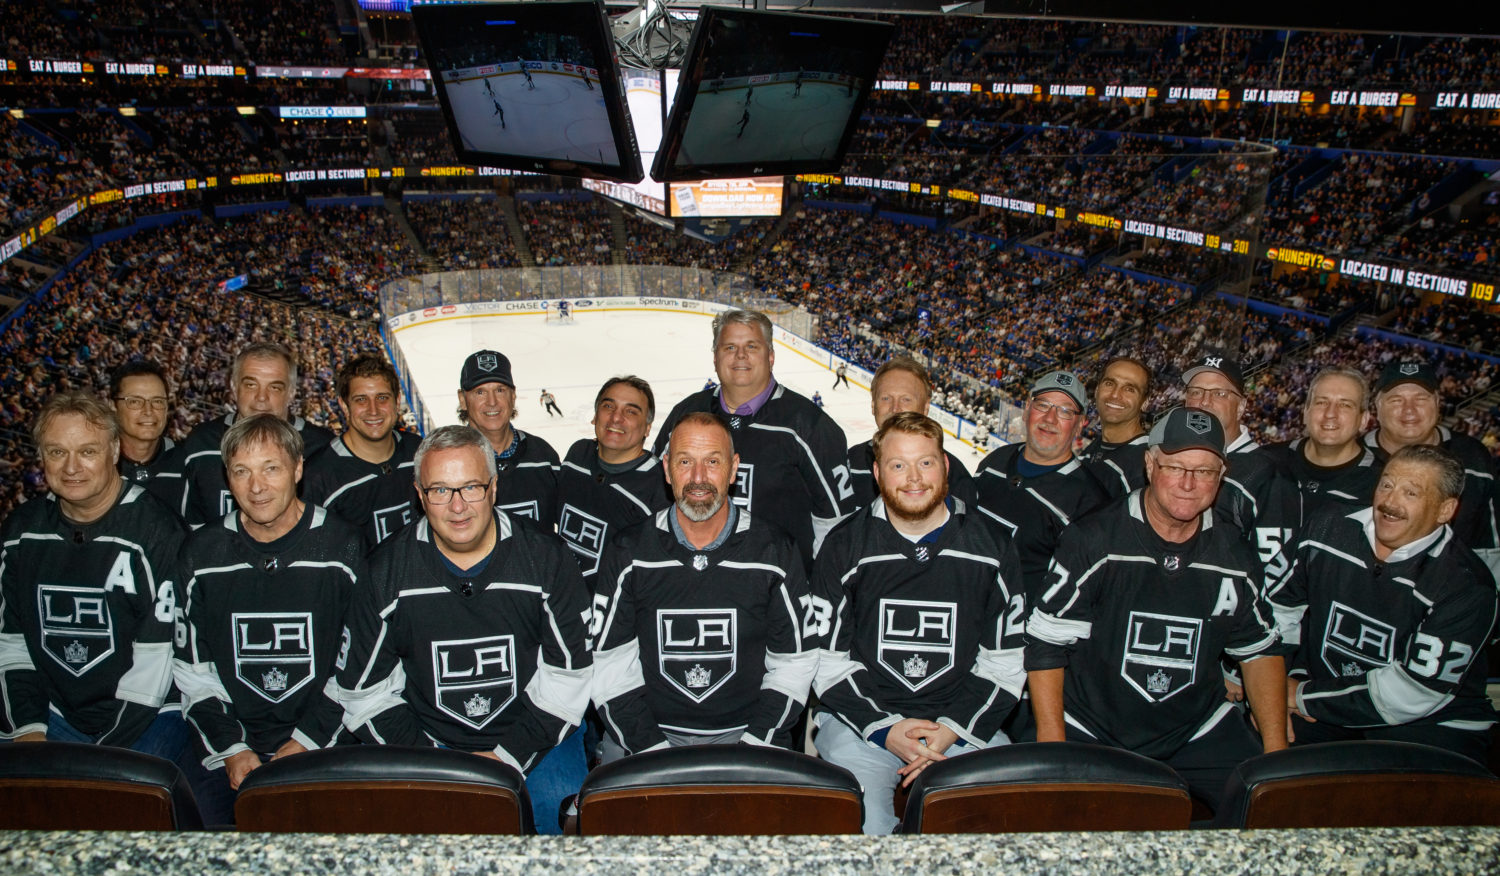 Photos: Dads, brothers in Florida - LA Kings Insider